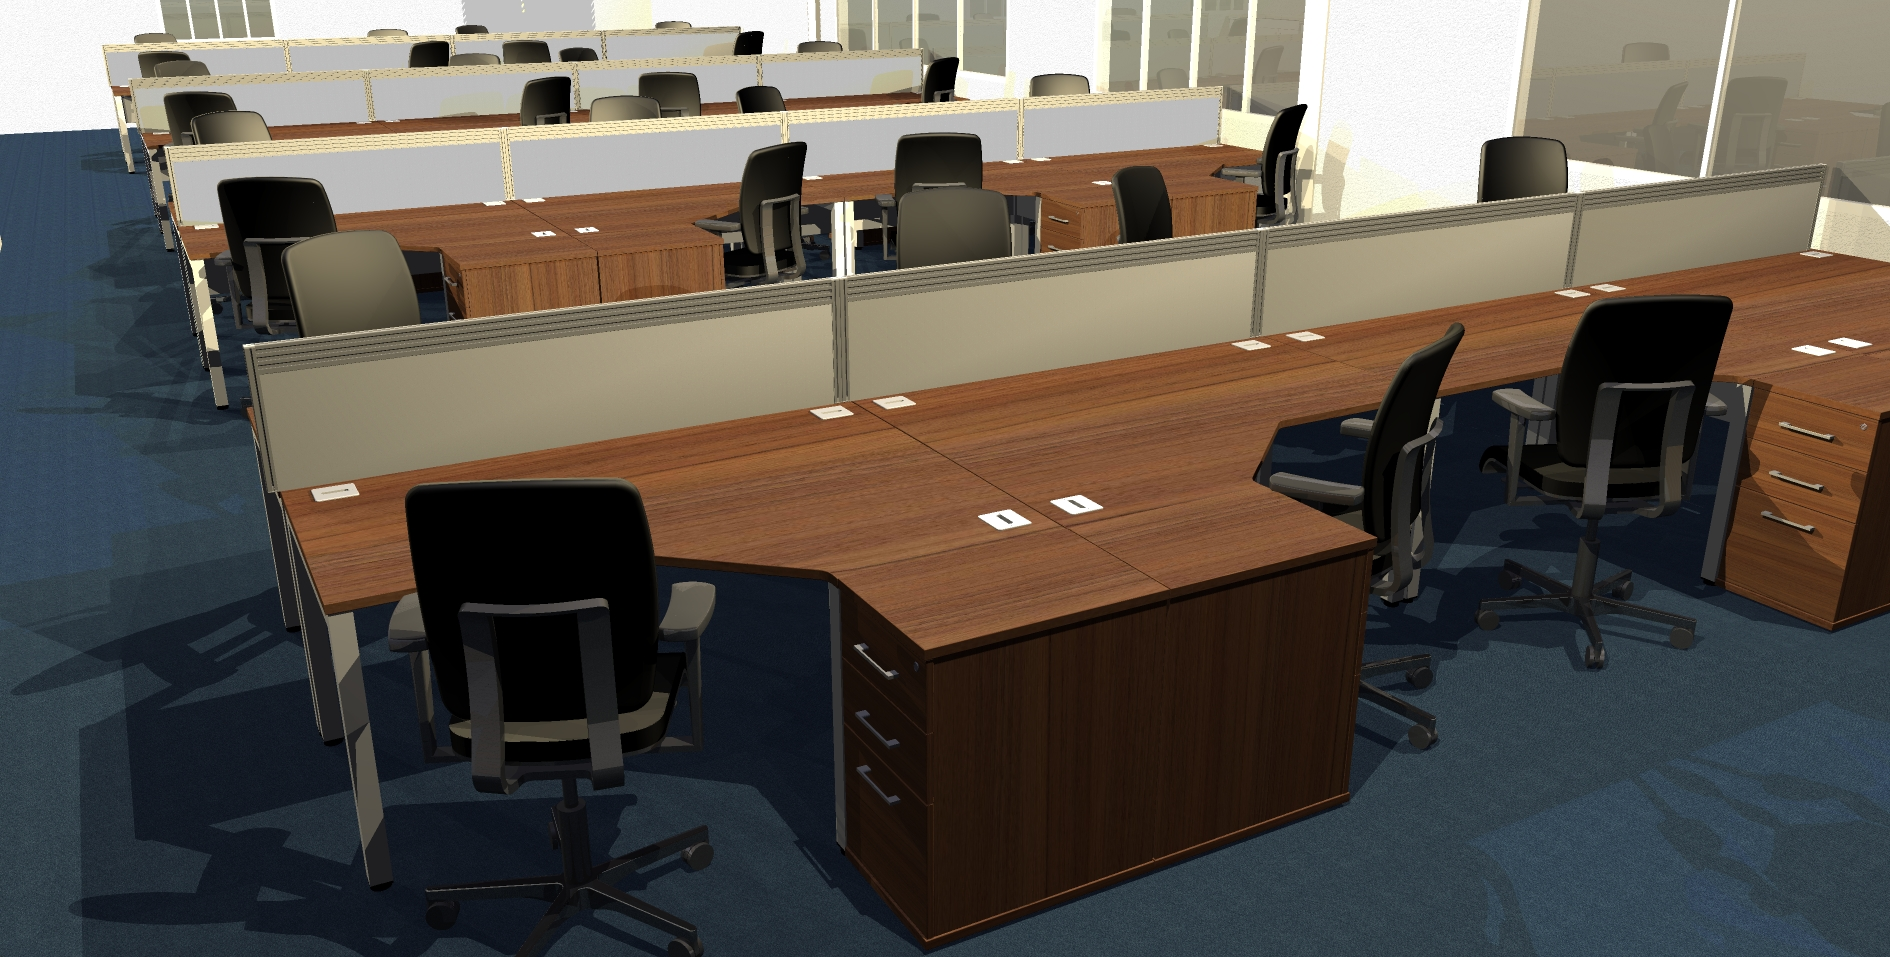 Office furniture planning service euro business services for Office design derby